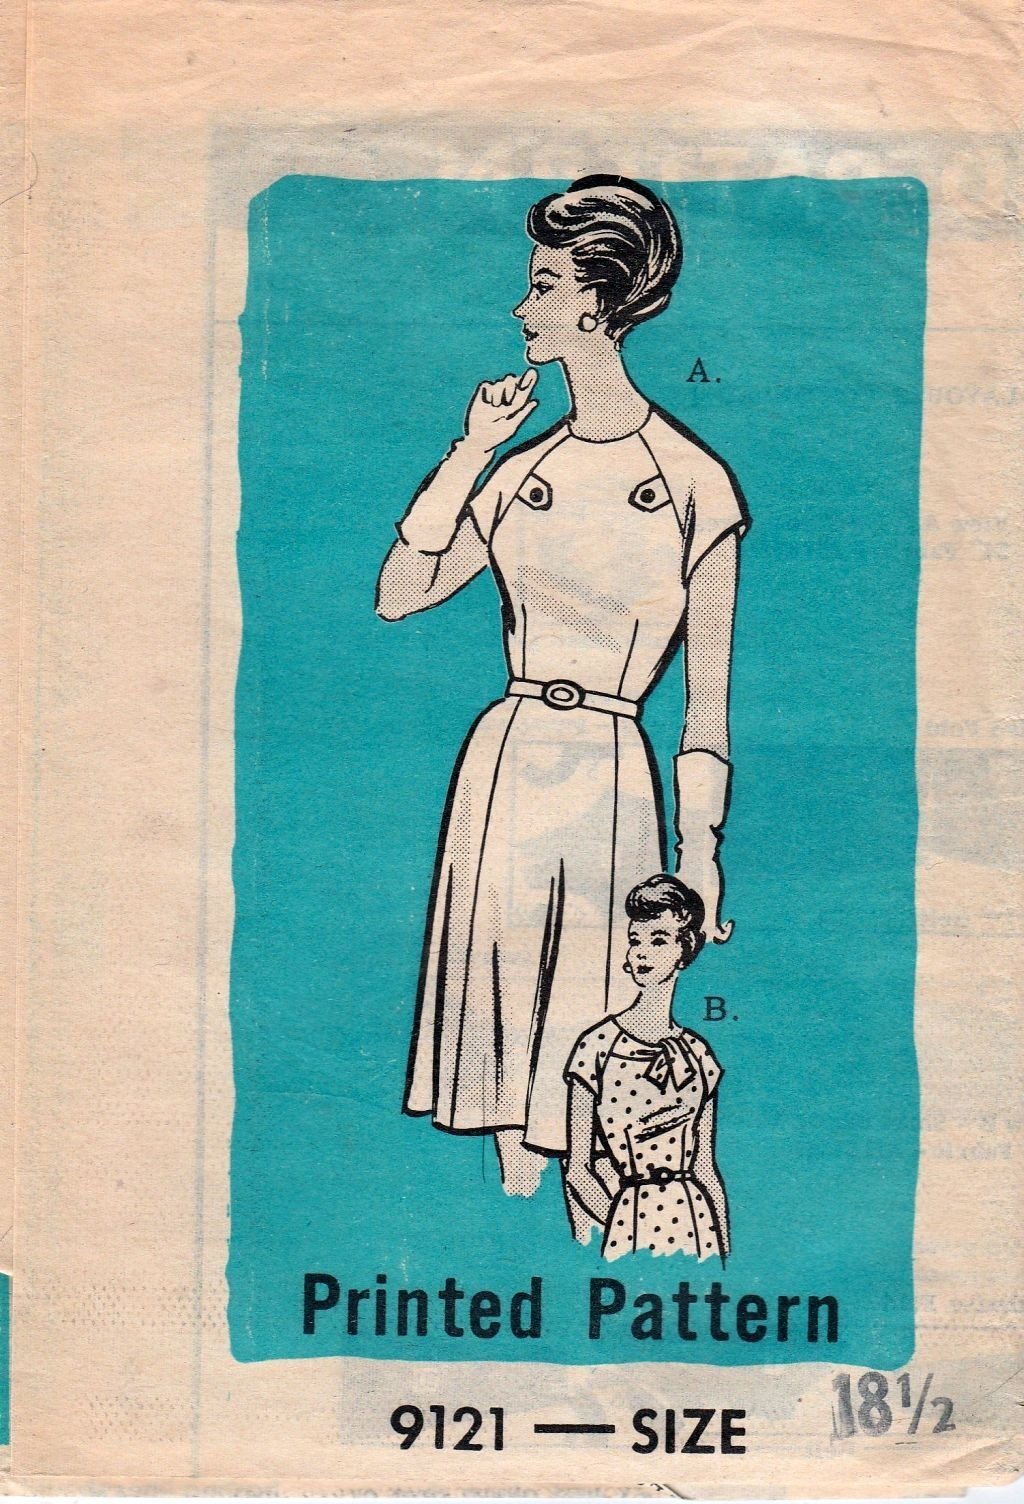 Mail Order 9121 Vintage 1960's Sewing Pattern Ladies Dress - VintageStitching - Vintage Sewing Patterns